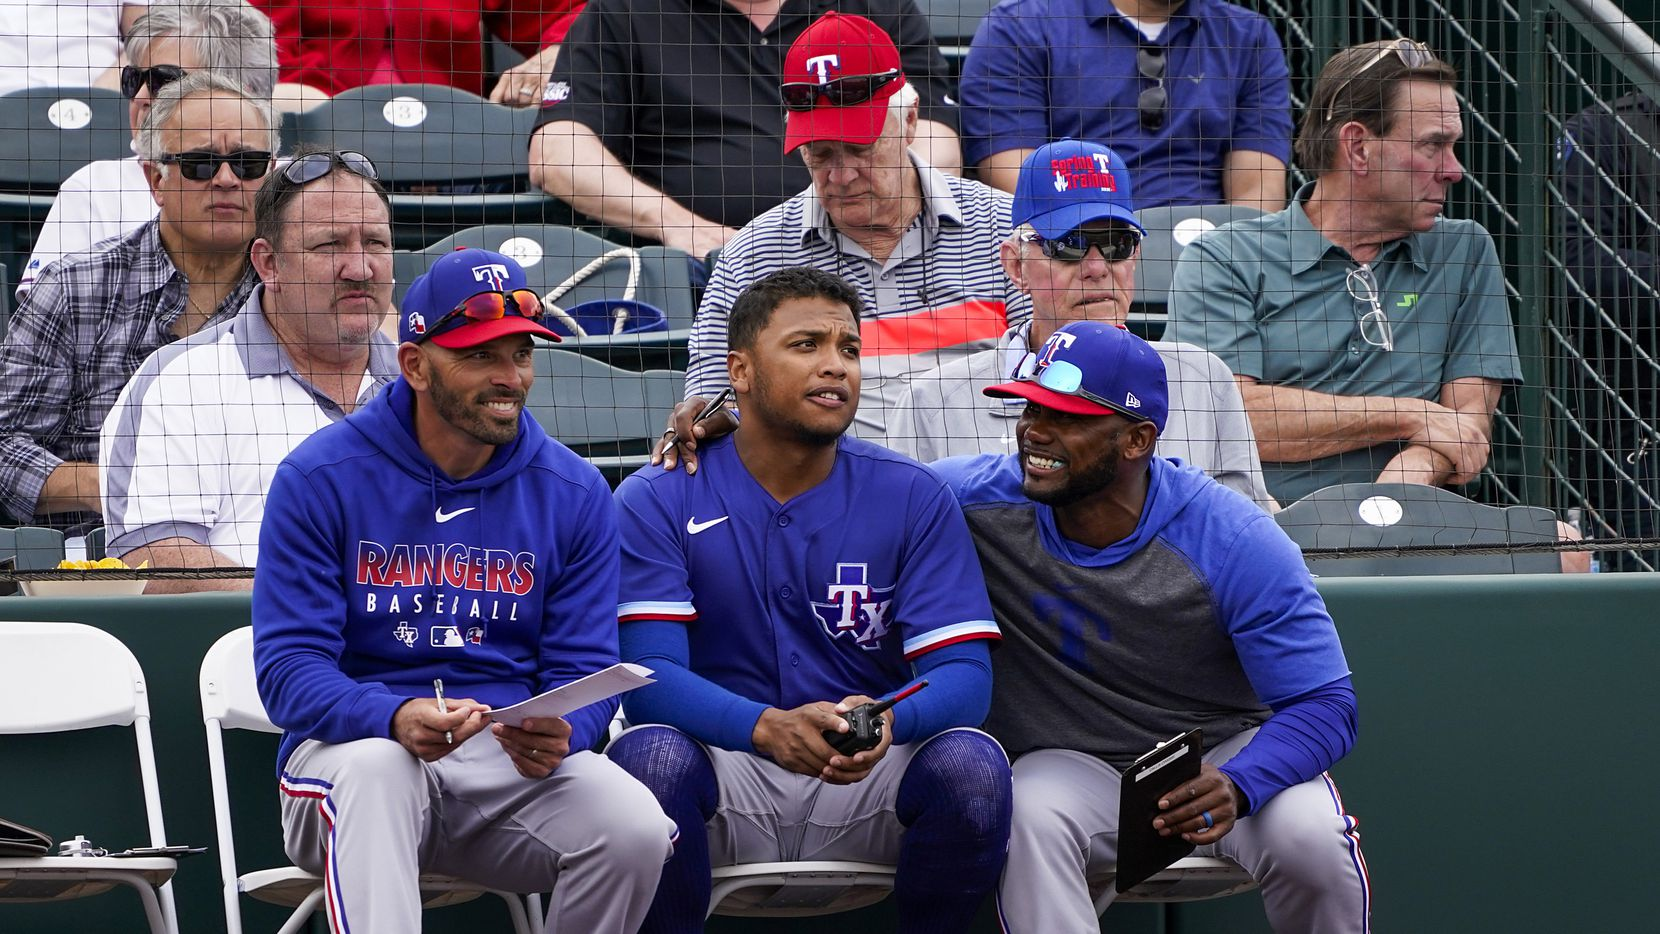 Texas Rangers outfielder Willie Calhoun (center) talks with assistant hitting coach Callix Crabbe (right) and manager Chris Woodward before batting during the fifth inning of a spring training game against the Los Angeles Angels at Tempe Diablo Stadium on Friday, Feb. 28, 2020, in Tempe, Ariz.